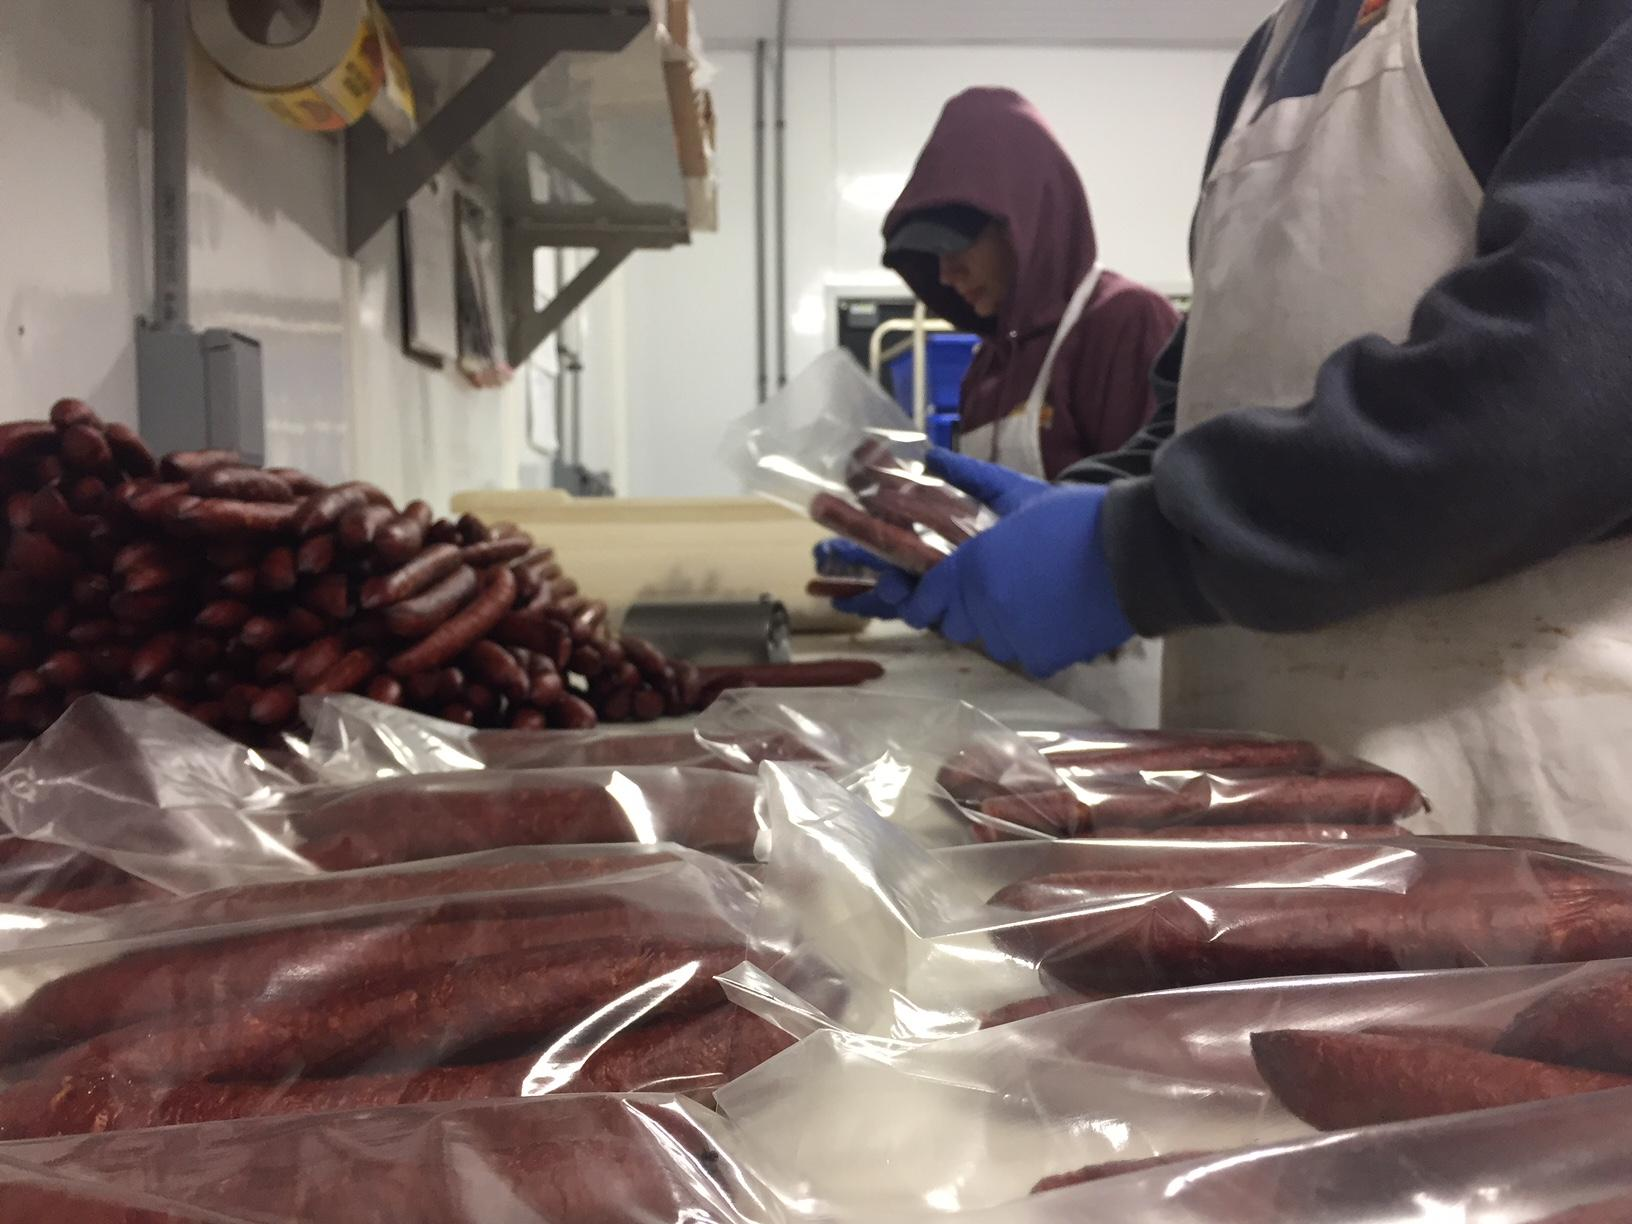 Workers process the meat for distribution at Smokey Meats in Crivitz, November 18, 2017, (WLUK/Lauren Kalil)<p></p>